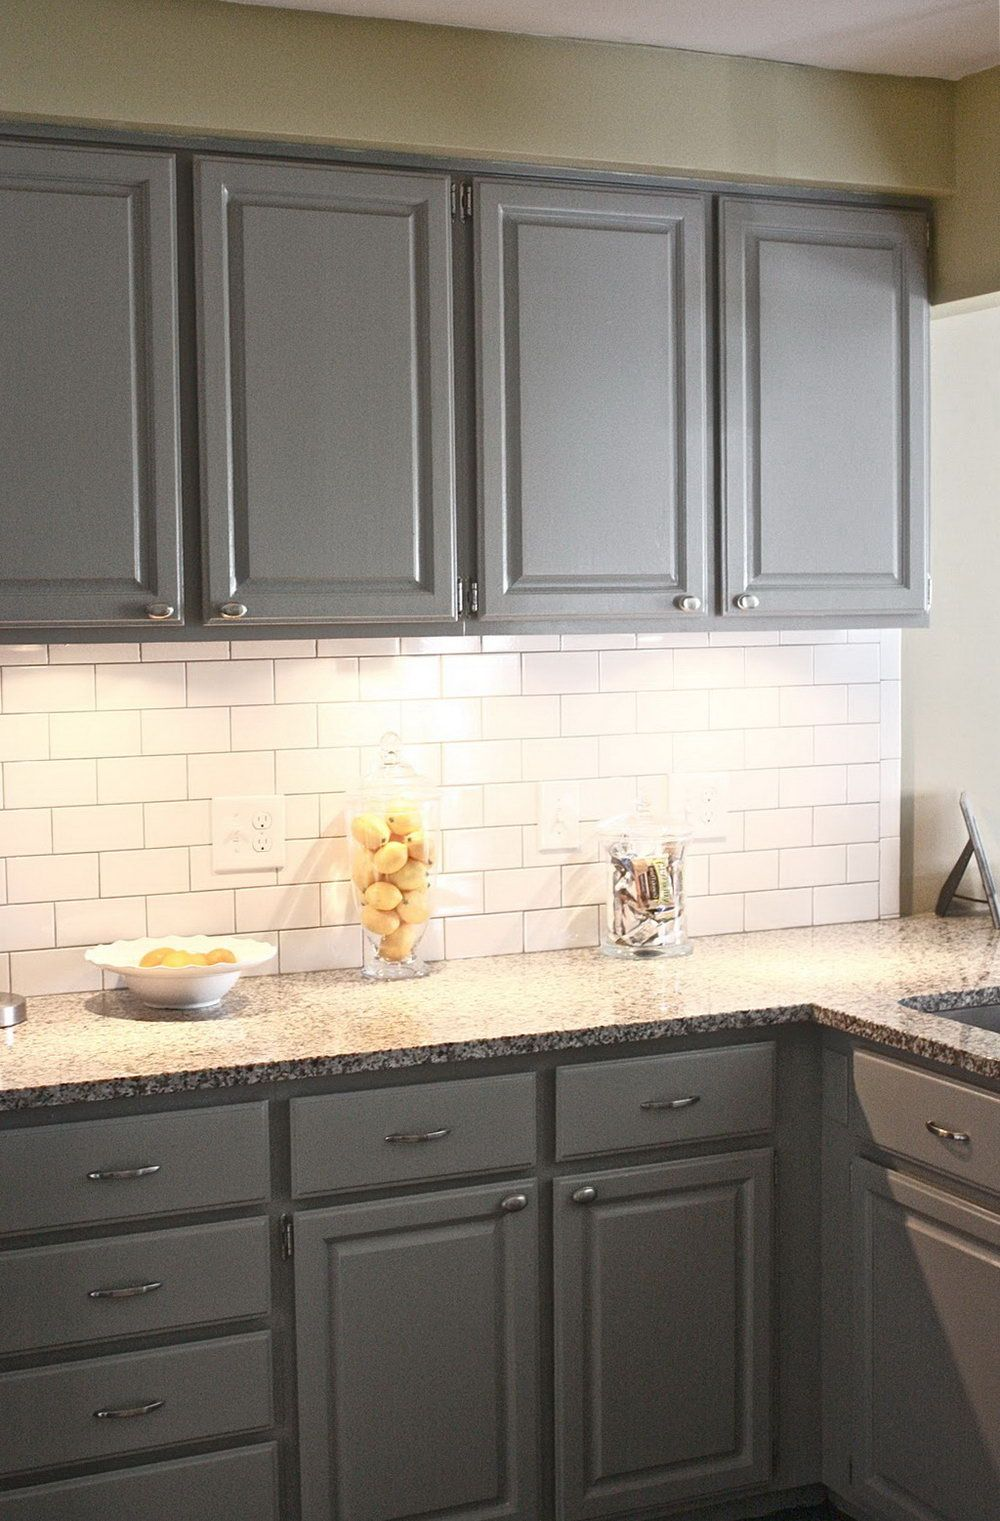 - Cool Kitchen Backsplash Subway Tile Subway Tile Backsplash